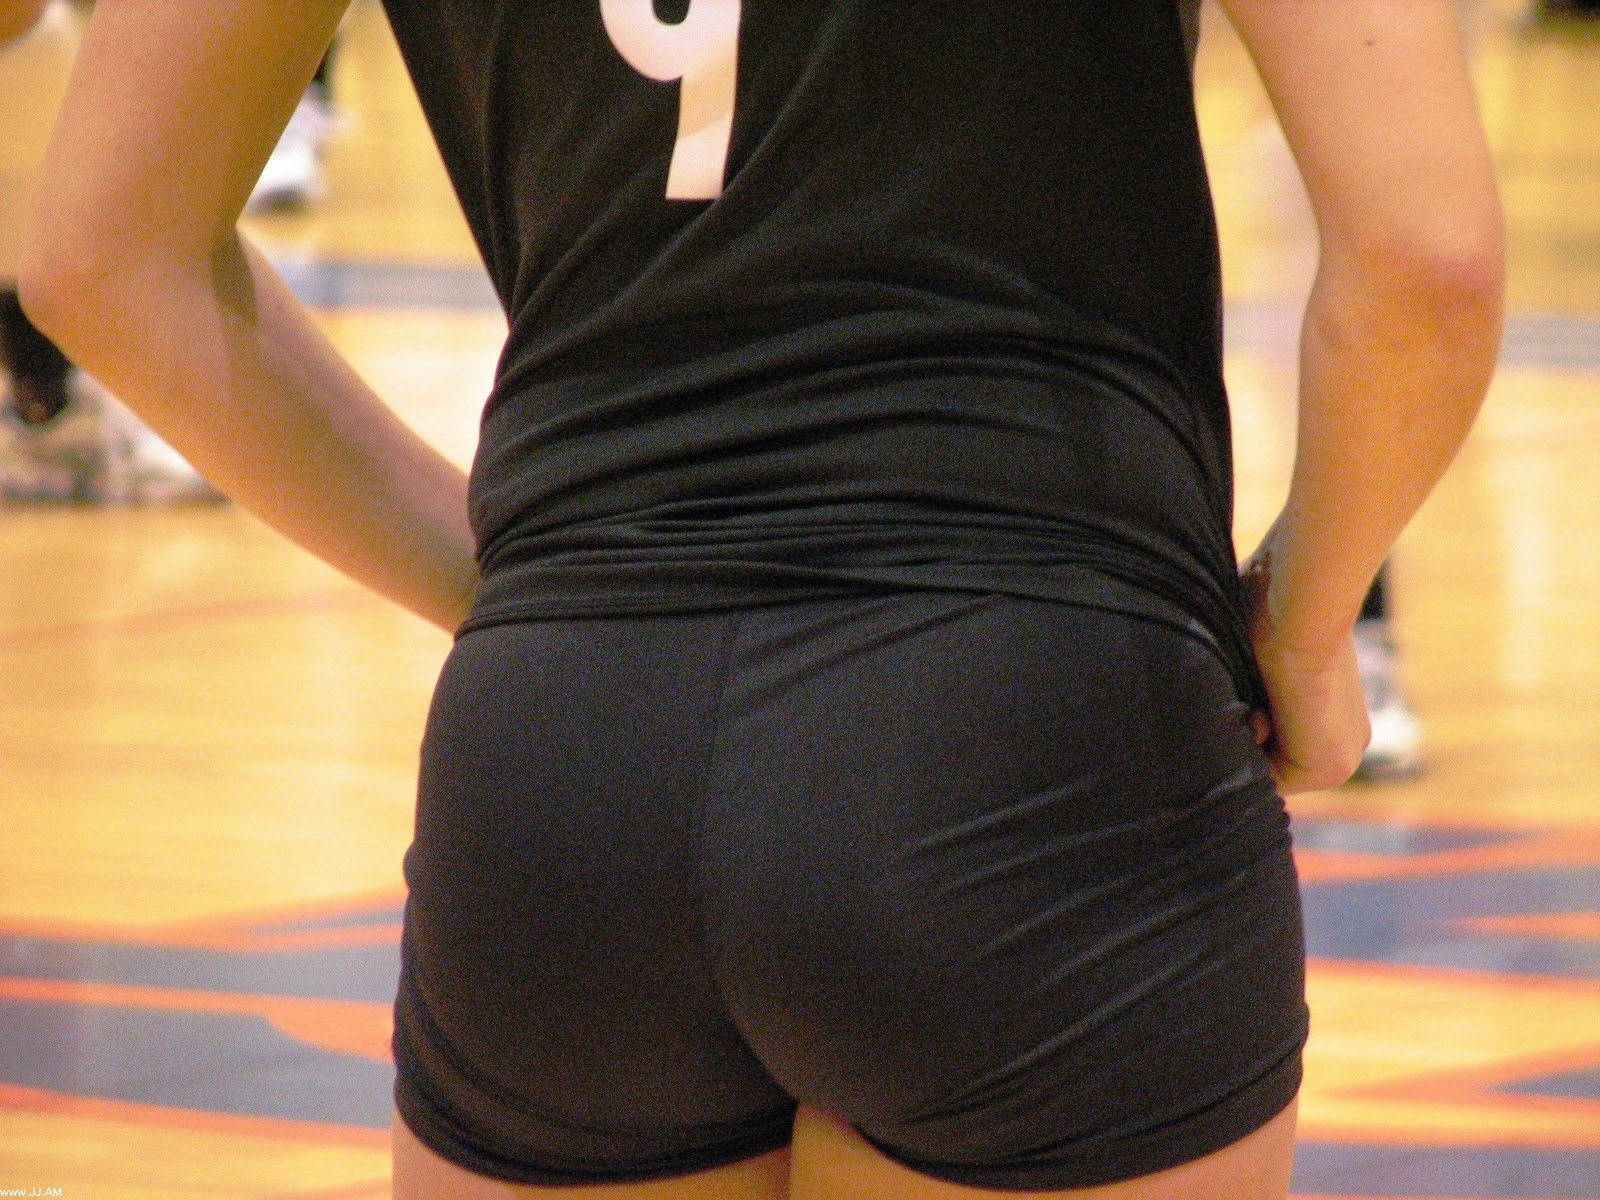 Women In Spandex Sex Pictures 7